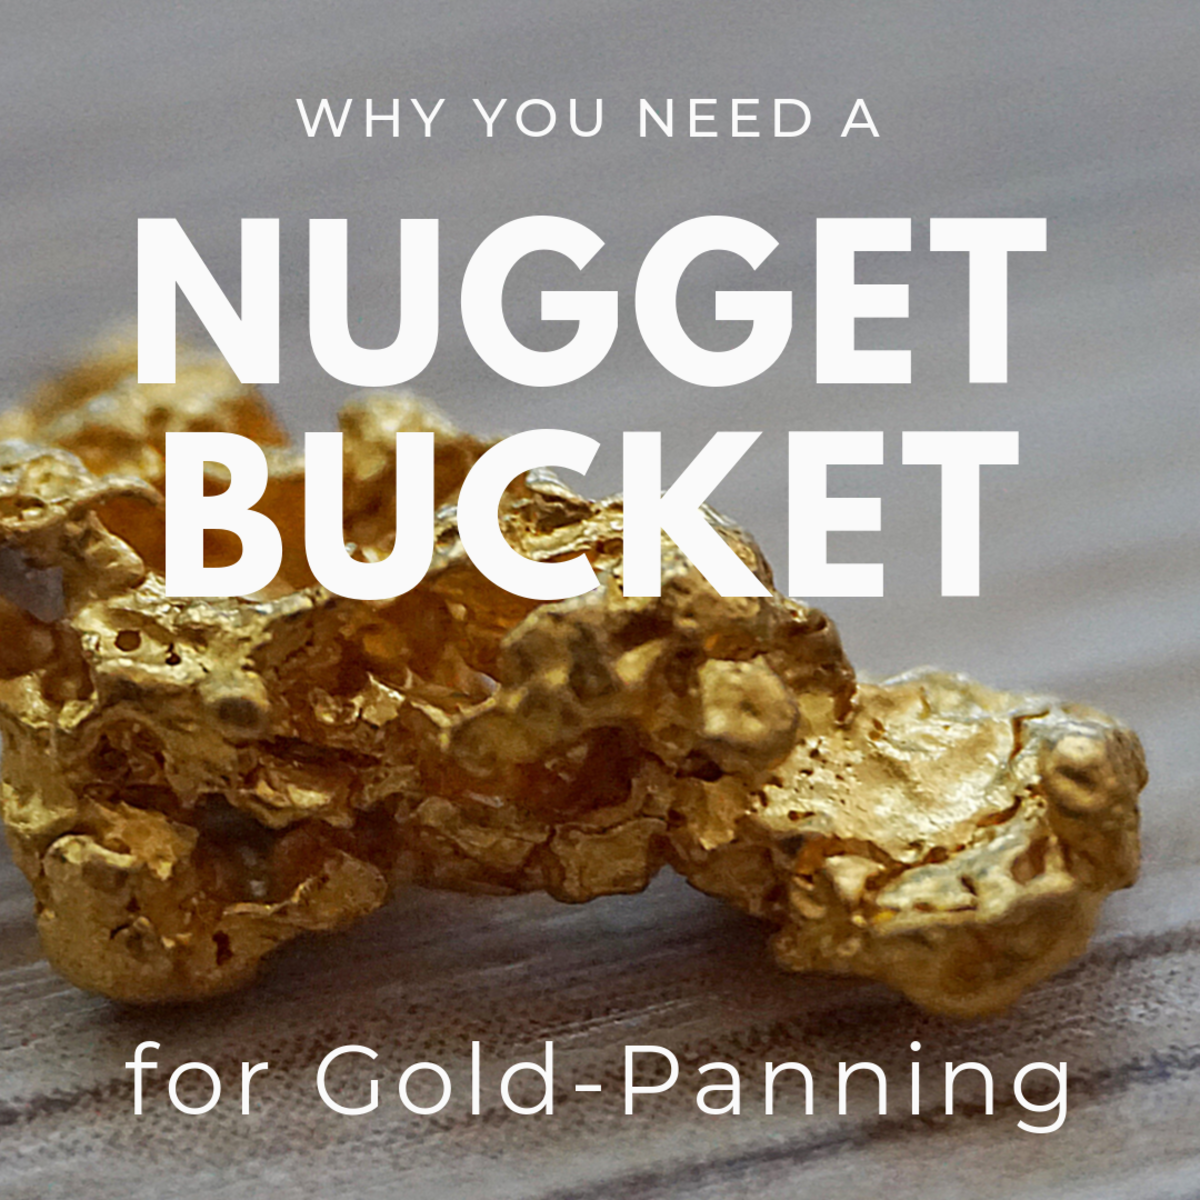 Why the Nugget Bucket Concept Is Golden for Panning